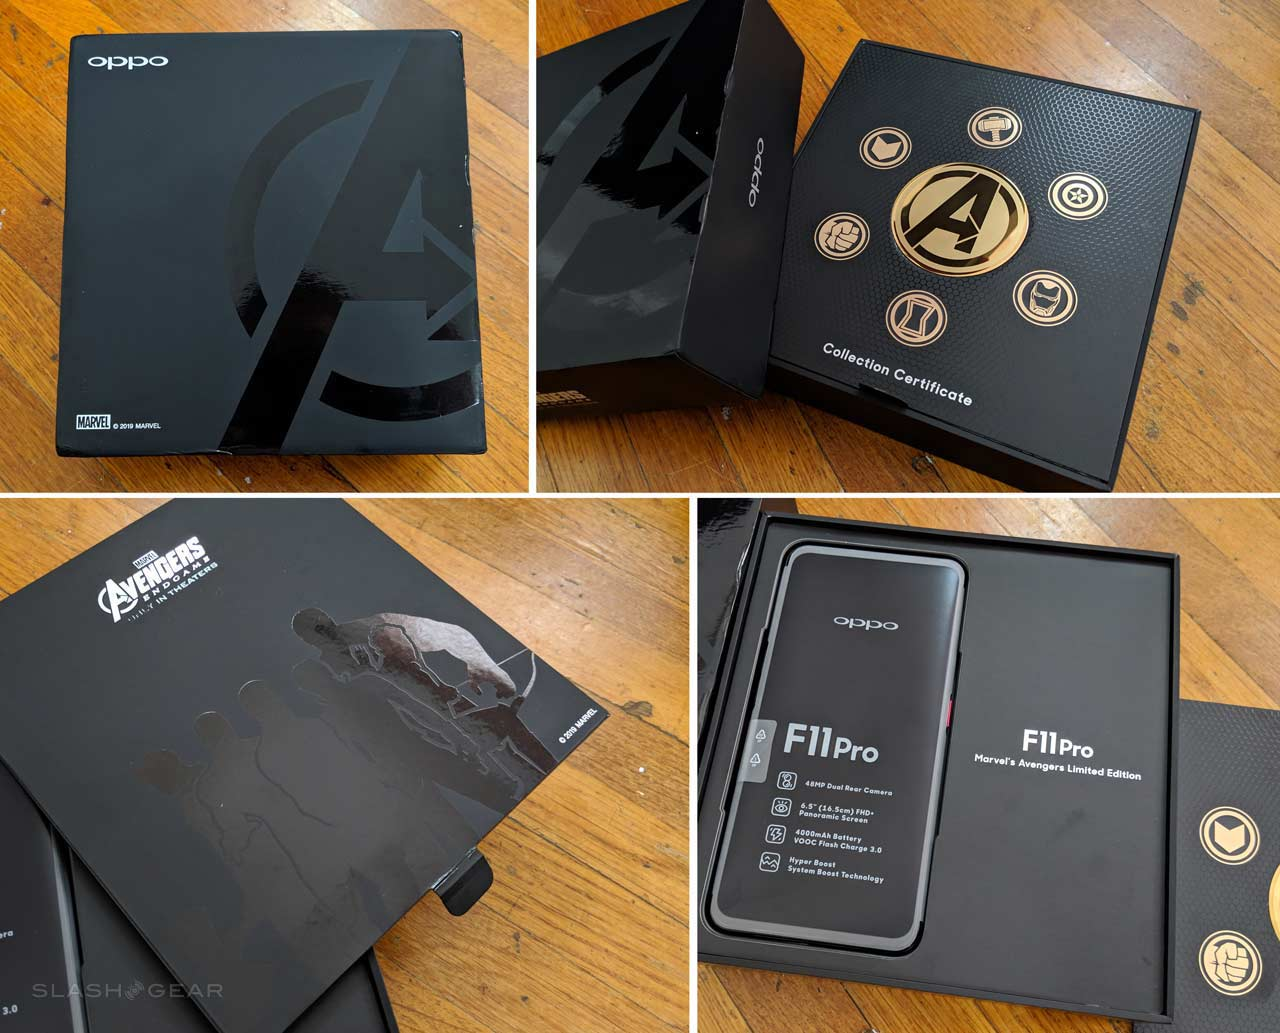 OPPO Avengers Endgame phone unboxing: You can't have it! - SlashGear